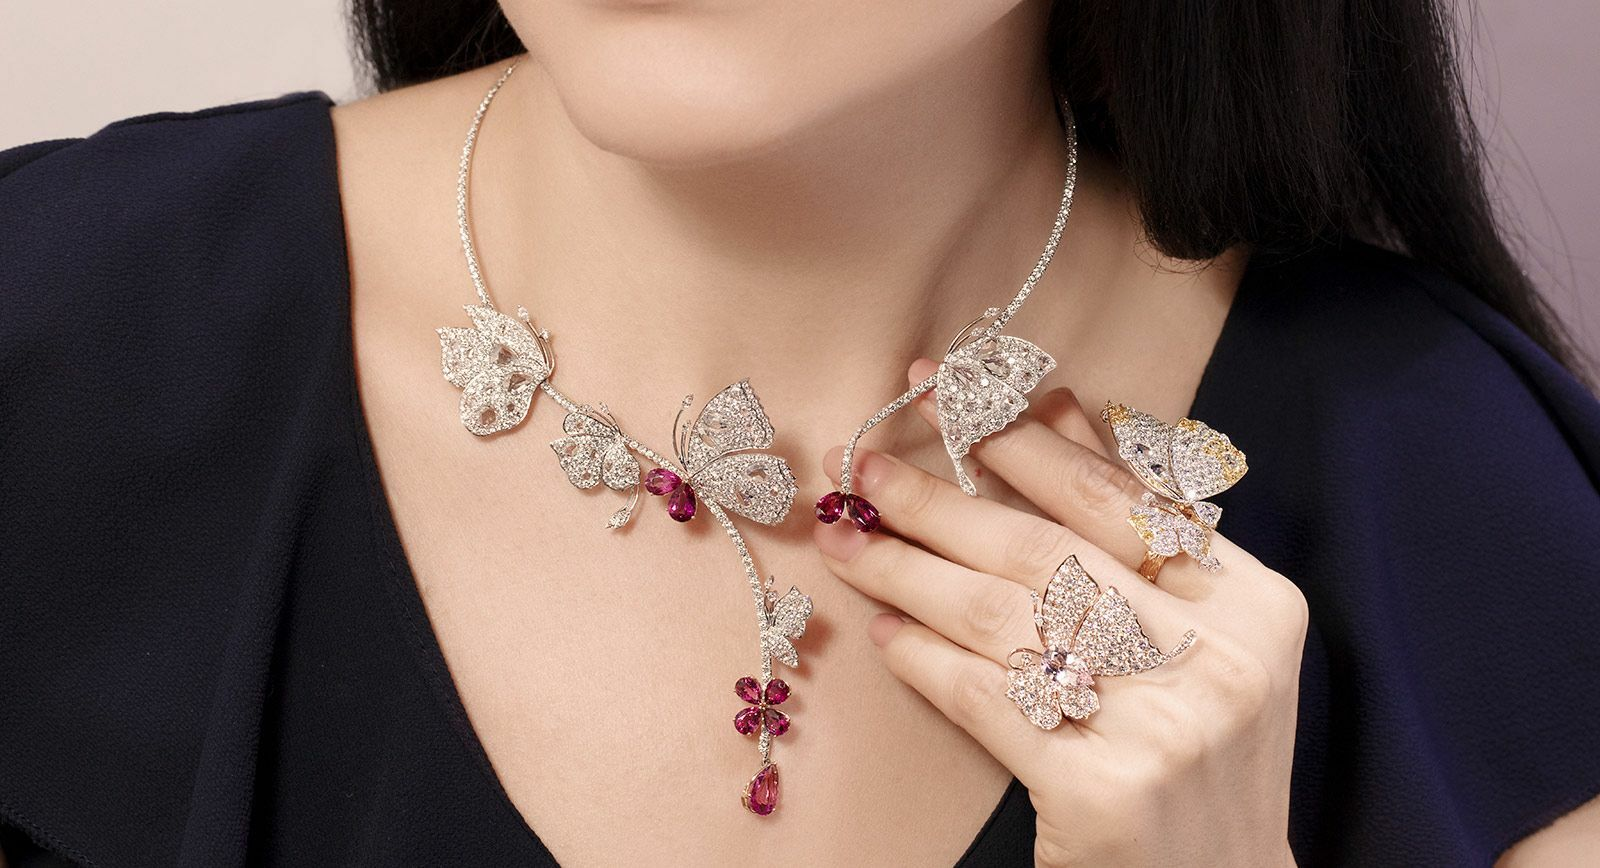 Jessica Fong: The jewellery designer's fascination with butterflies